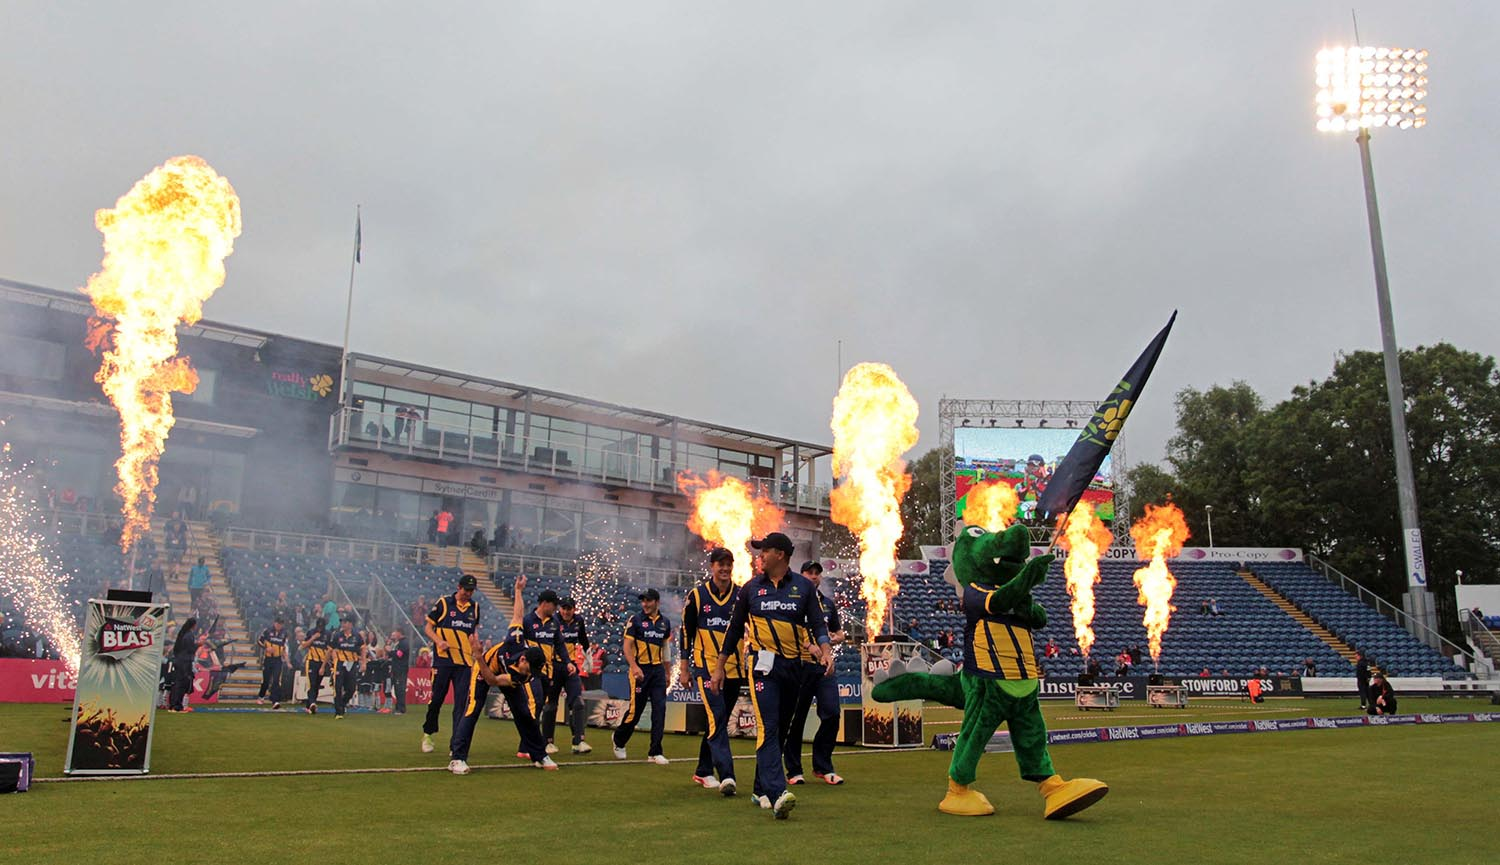 Glamorgan go onto the field at the start of a T20 Blast match